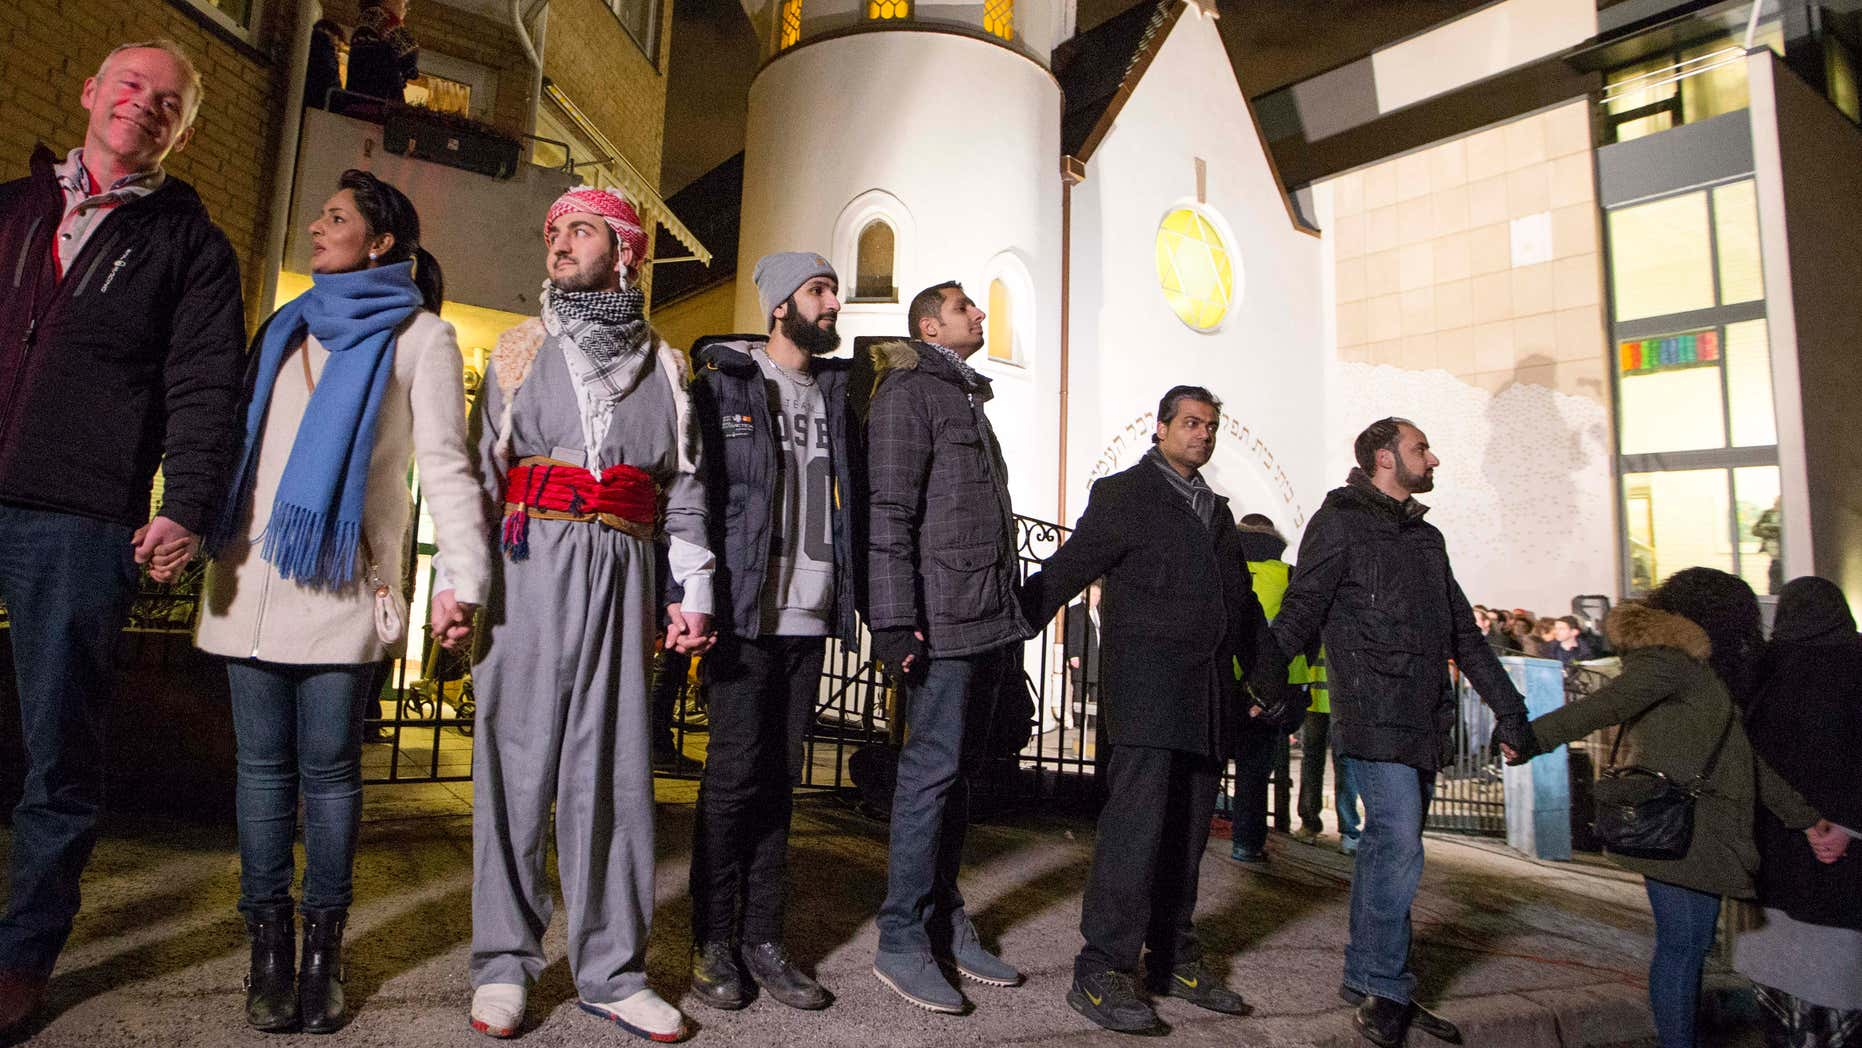 """Feb. 21, 2015: More than 1,000 people formed a """"ring of peace"""" around the Norwegian capital's synagogue, an initiative taken by young Muslims in Norway after a series of attacks against Jews in Europe, in Oslo."""